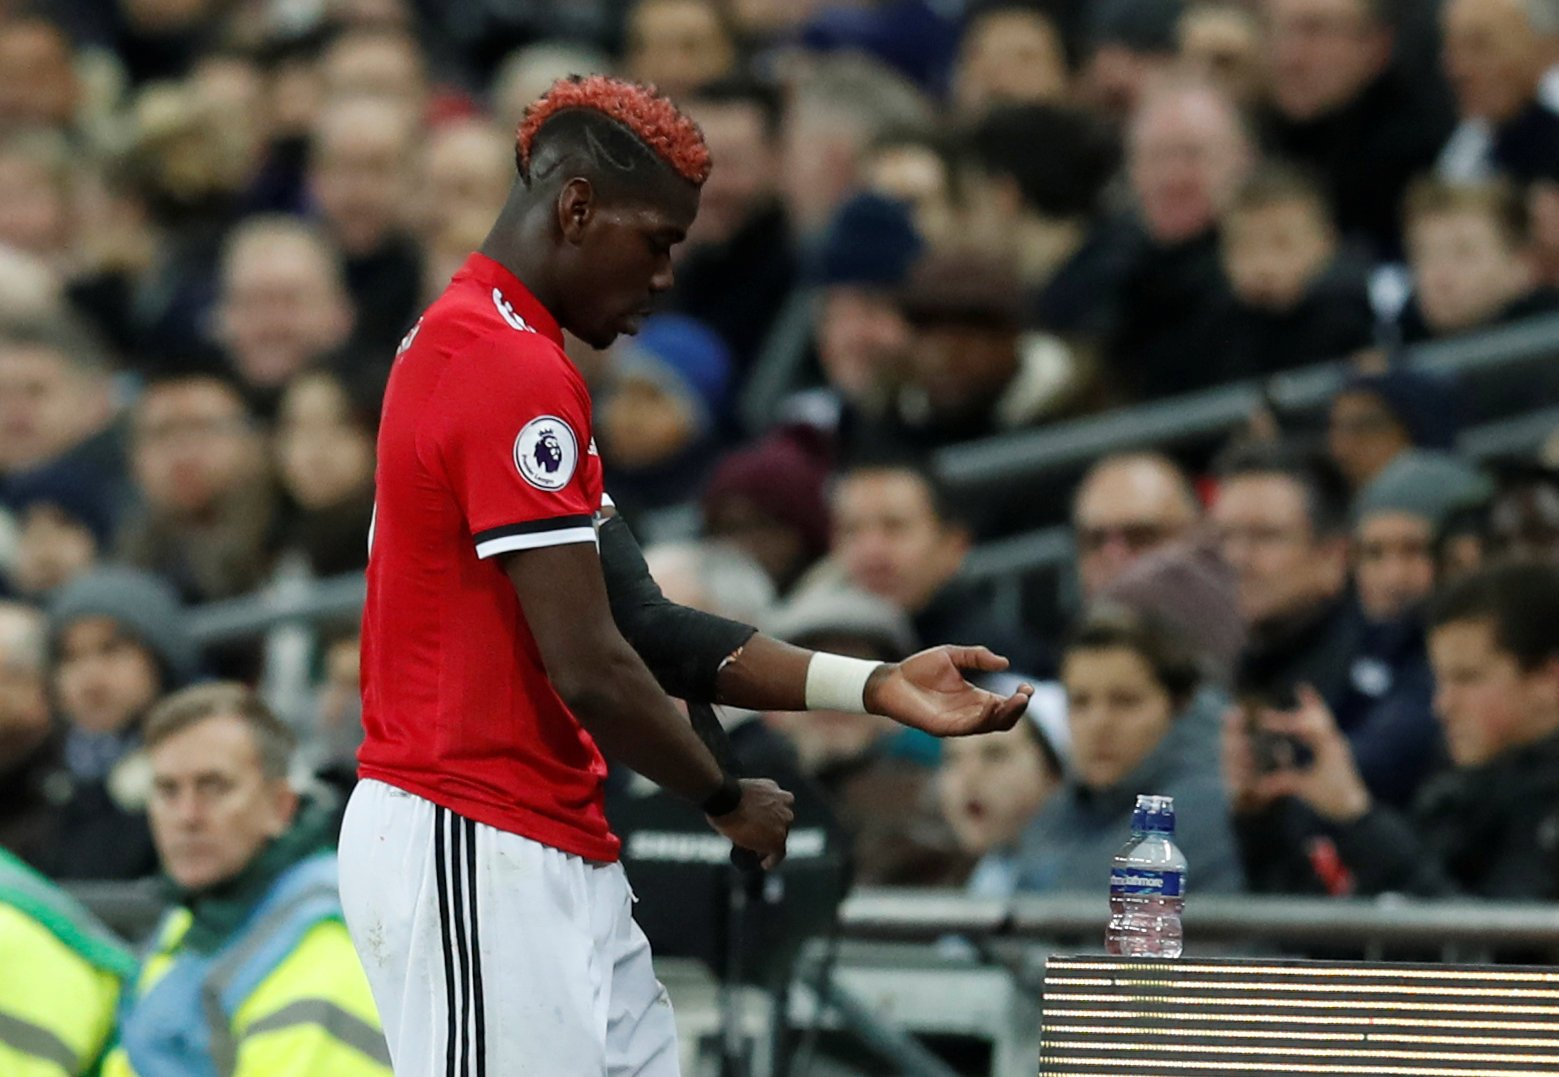 Paul Pogba is subbed off by Jose Mourinho